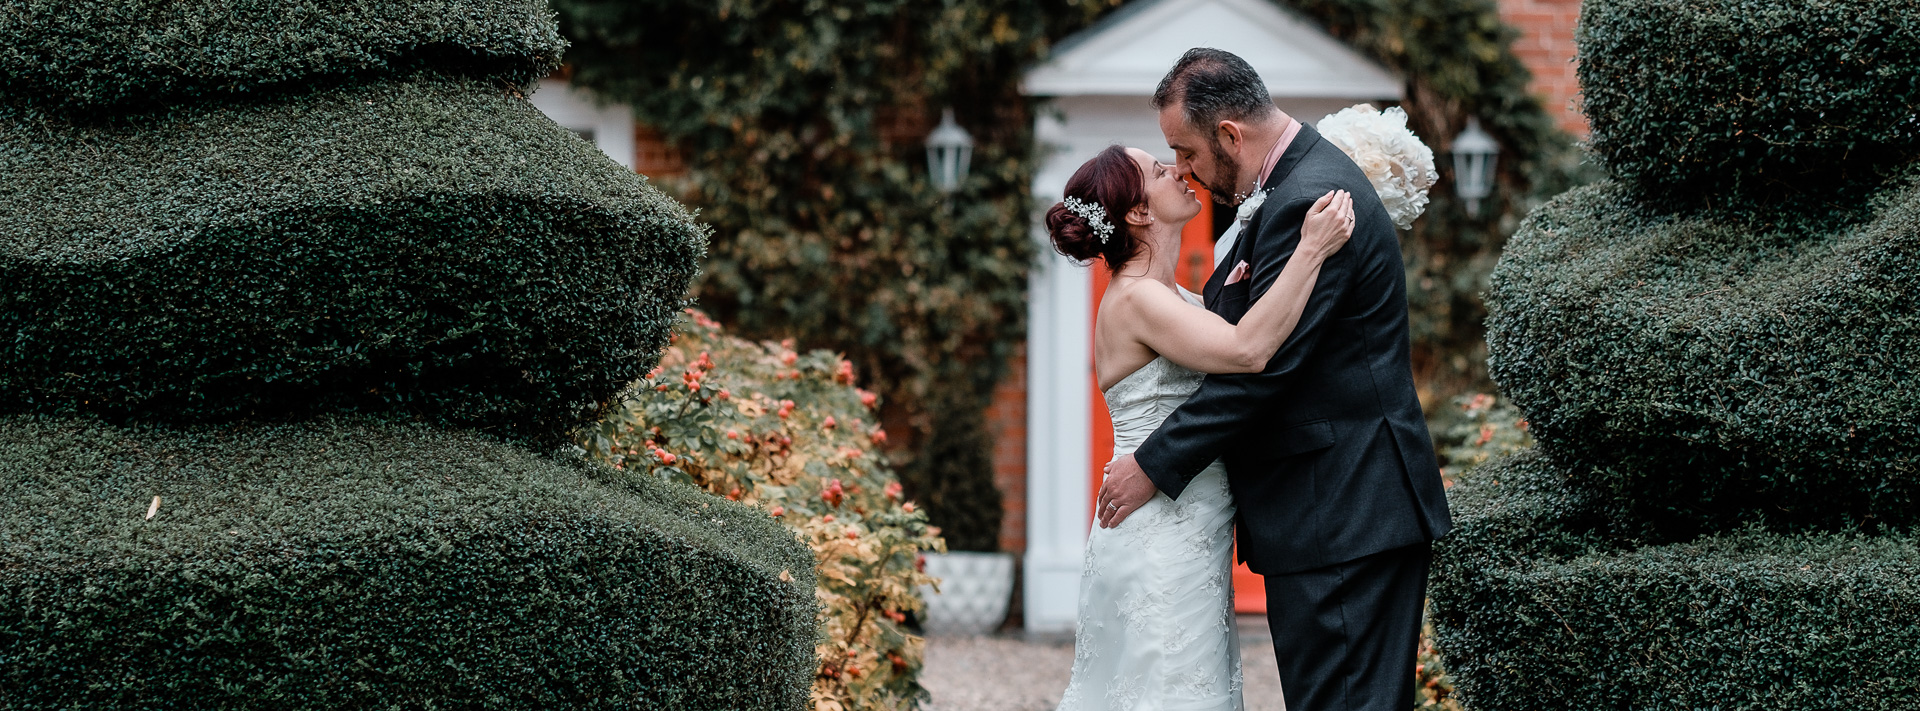 Louise and Matt's Wedding at Kersey Mill